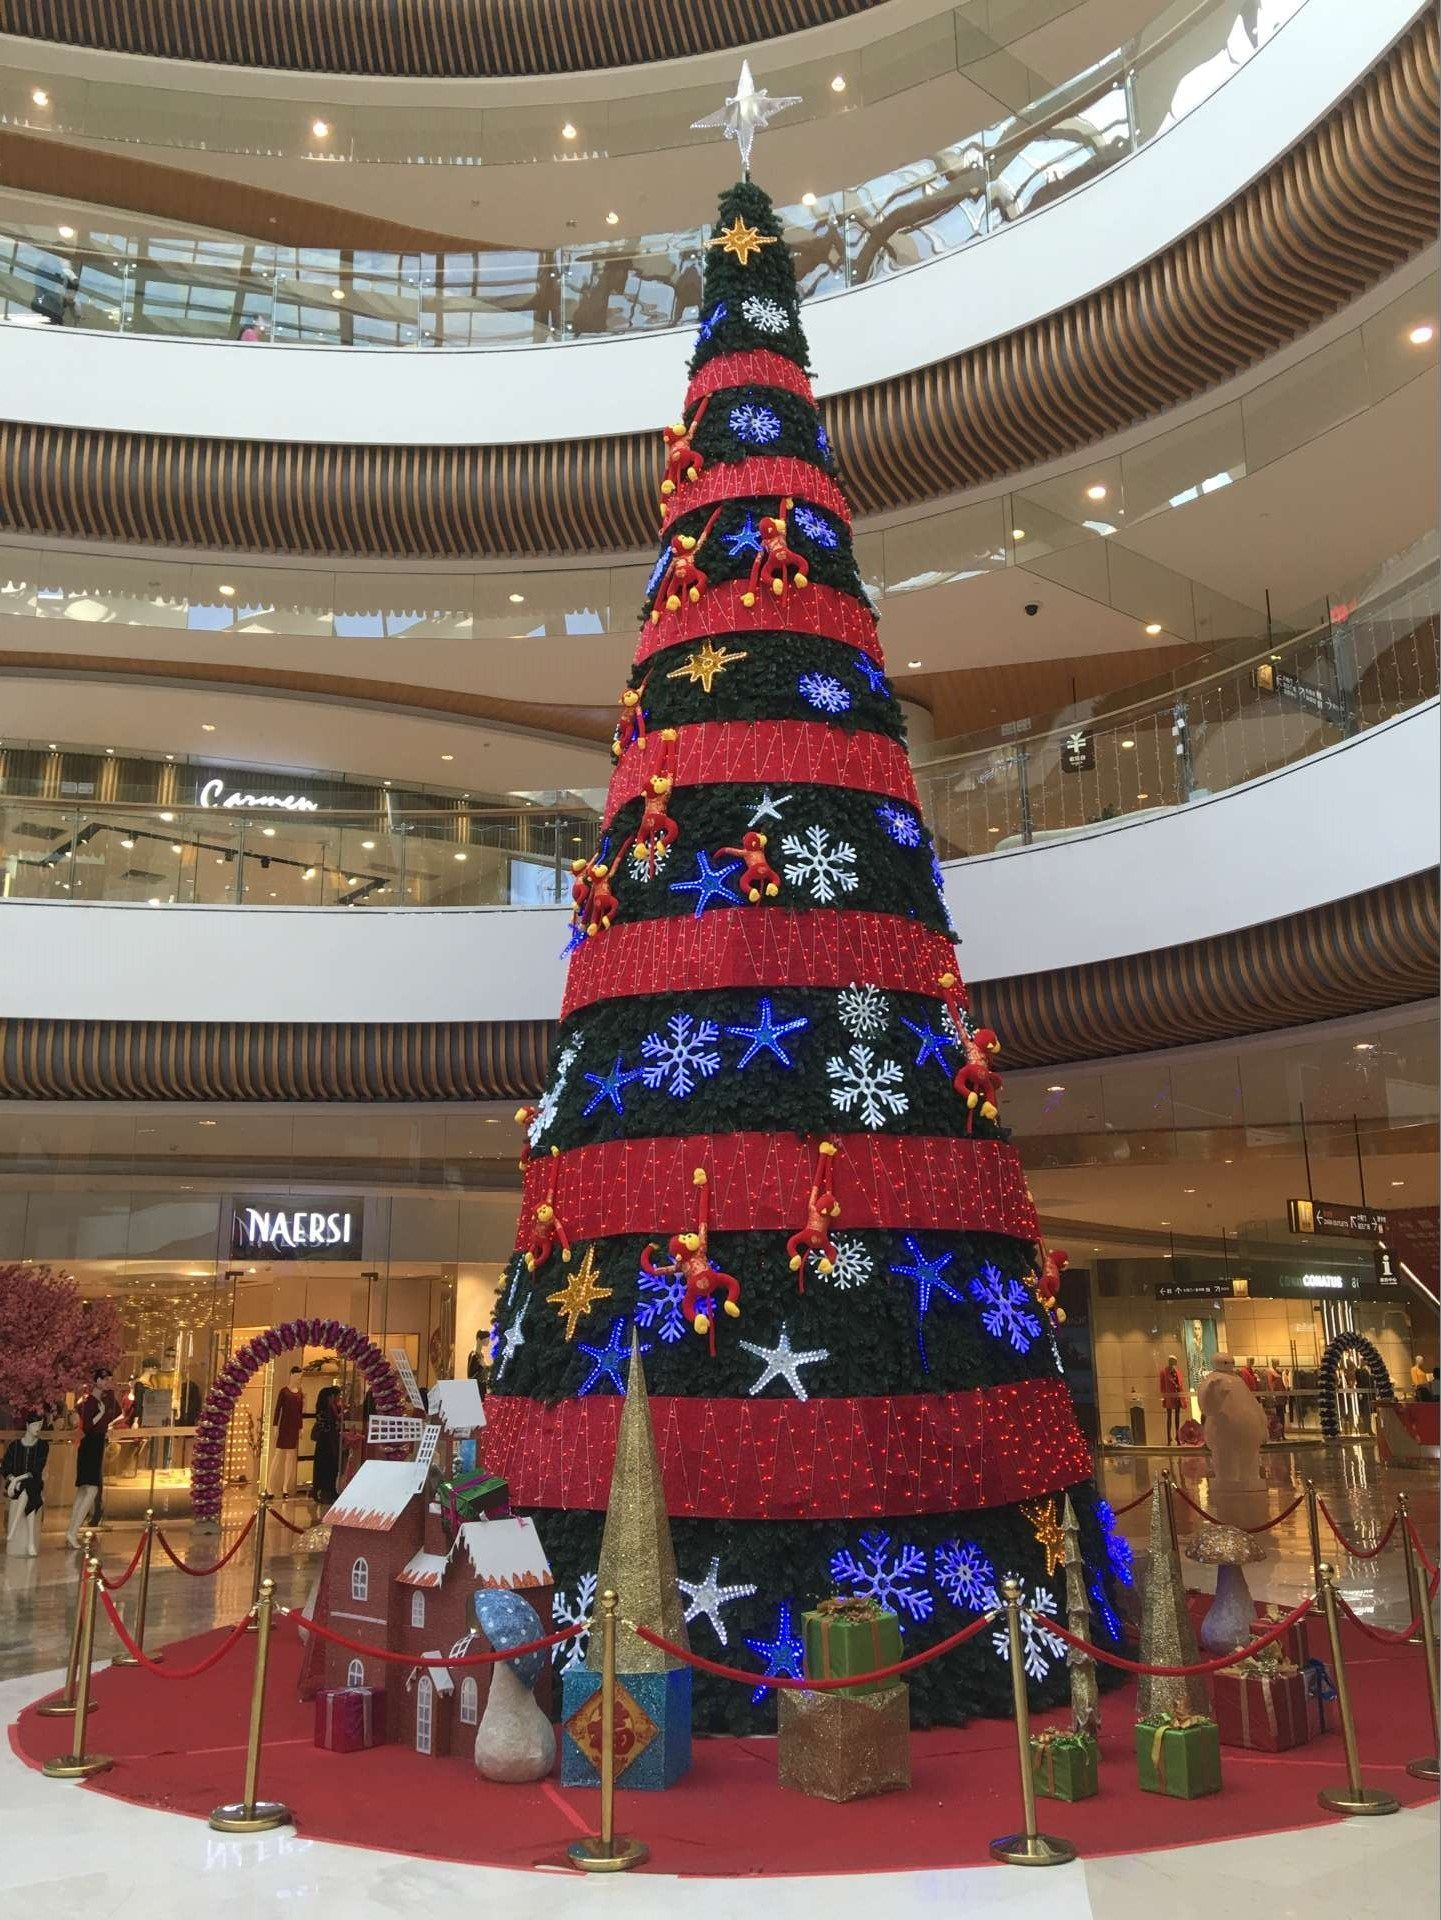 Mall decorative lighted commercial Christmas tree ...